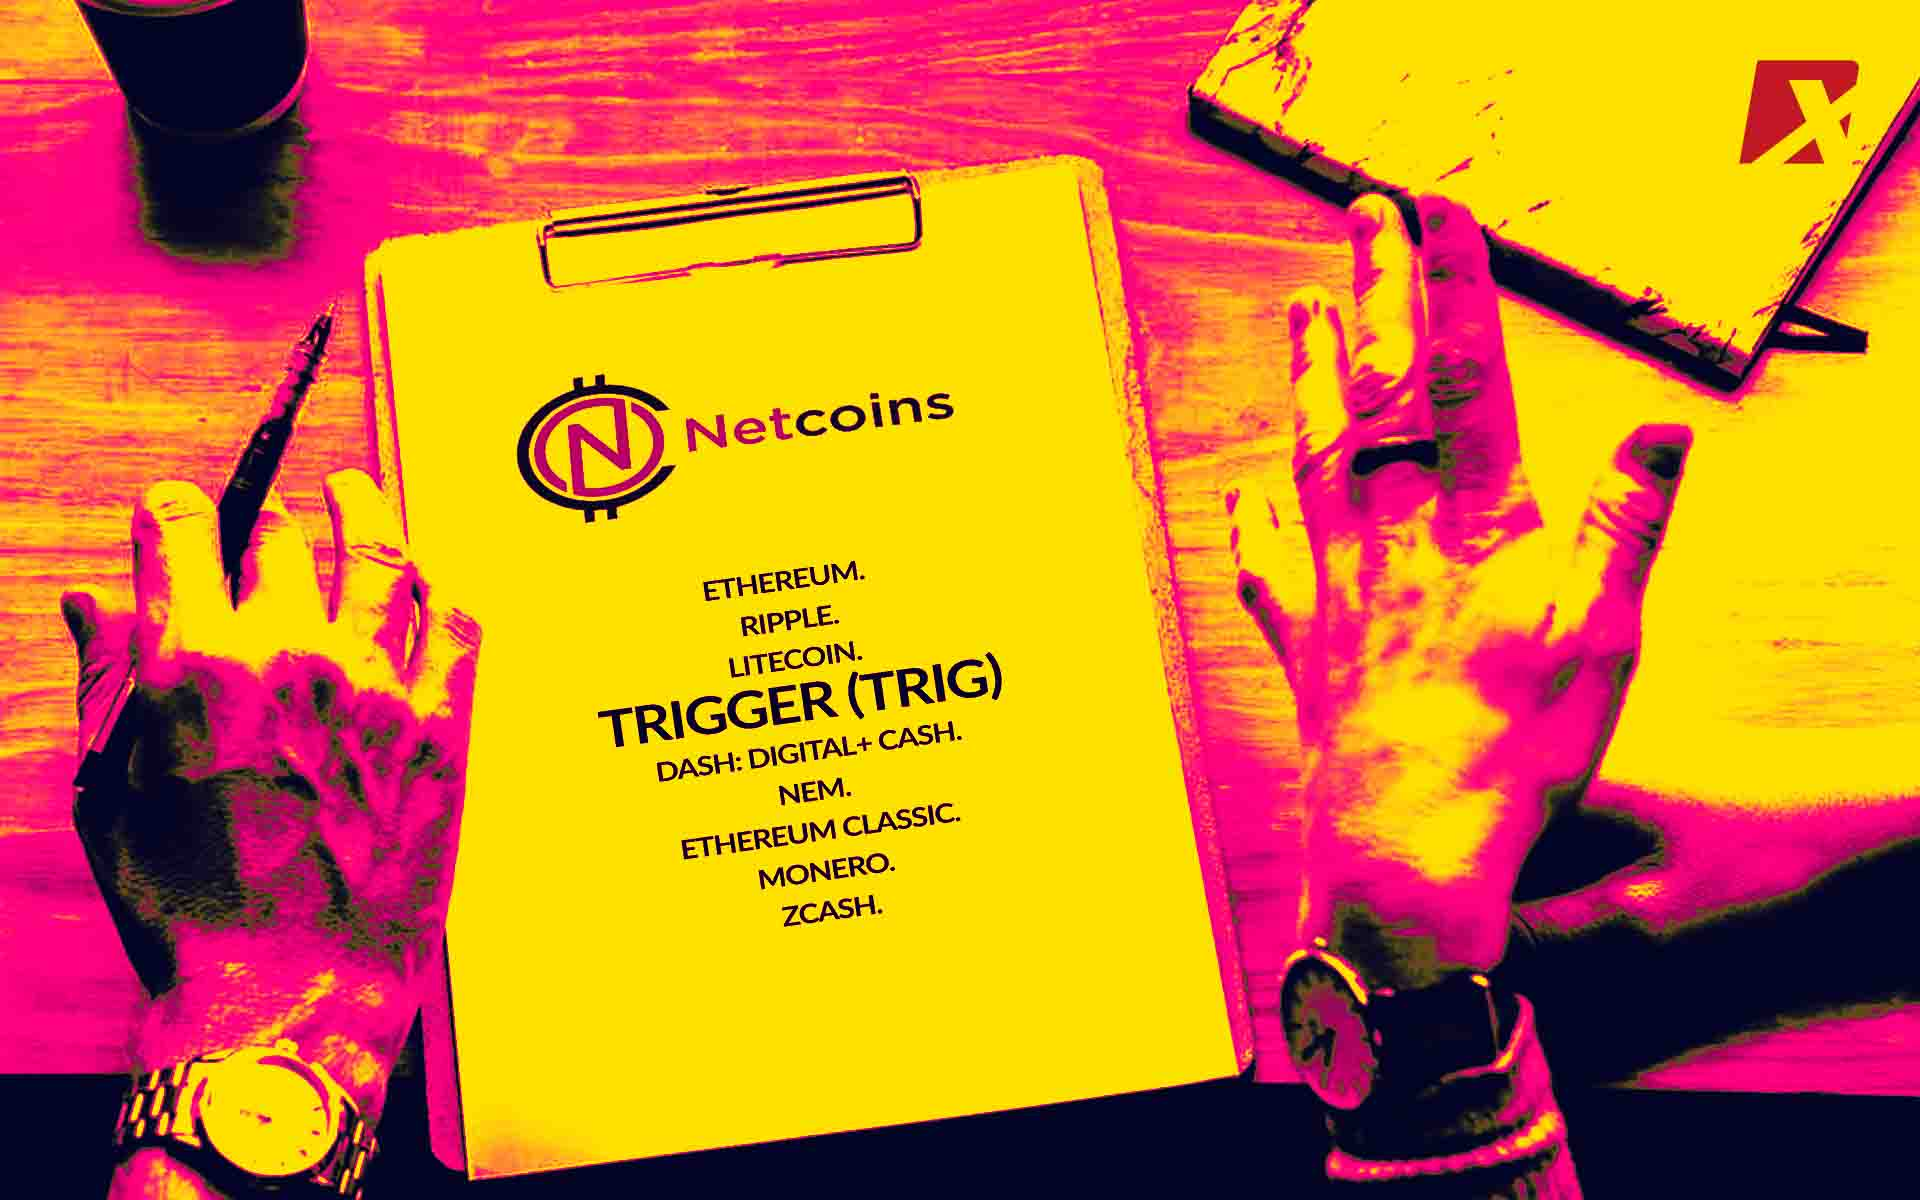 Netcoins Holdings Exchange For Consumers & Retailers Lists TRIG Coin